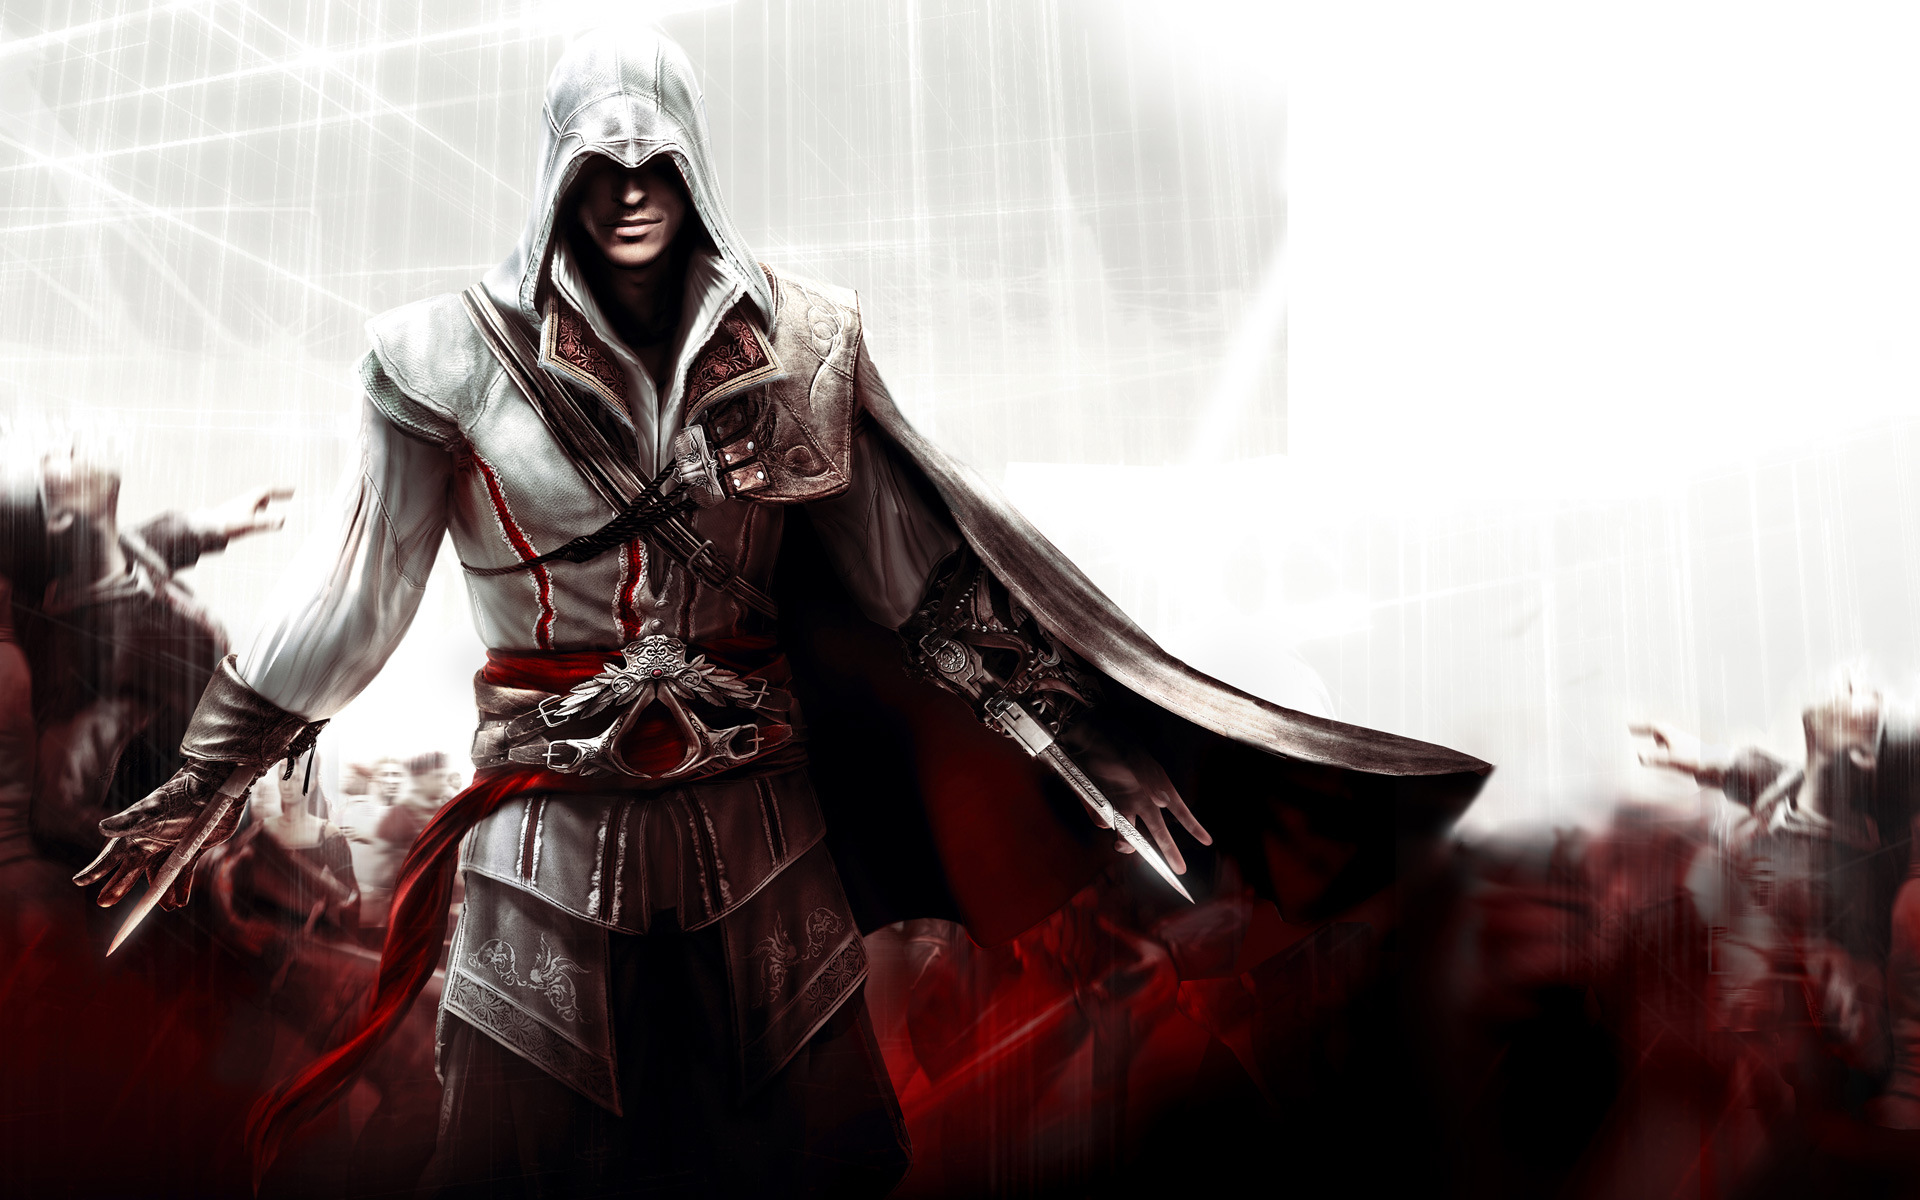 assassins-creed-ii-01-artwork-1920x1200.jpg